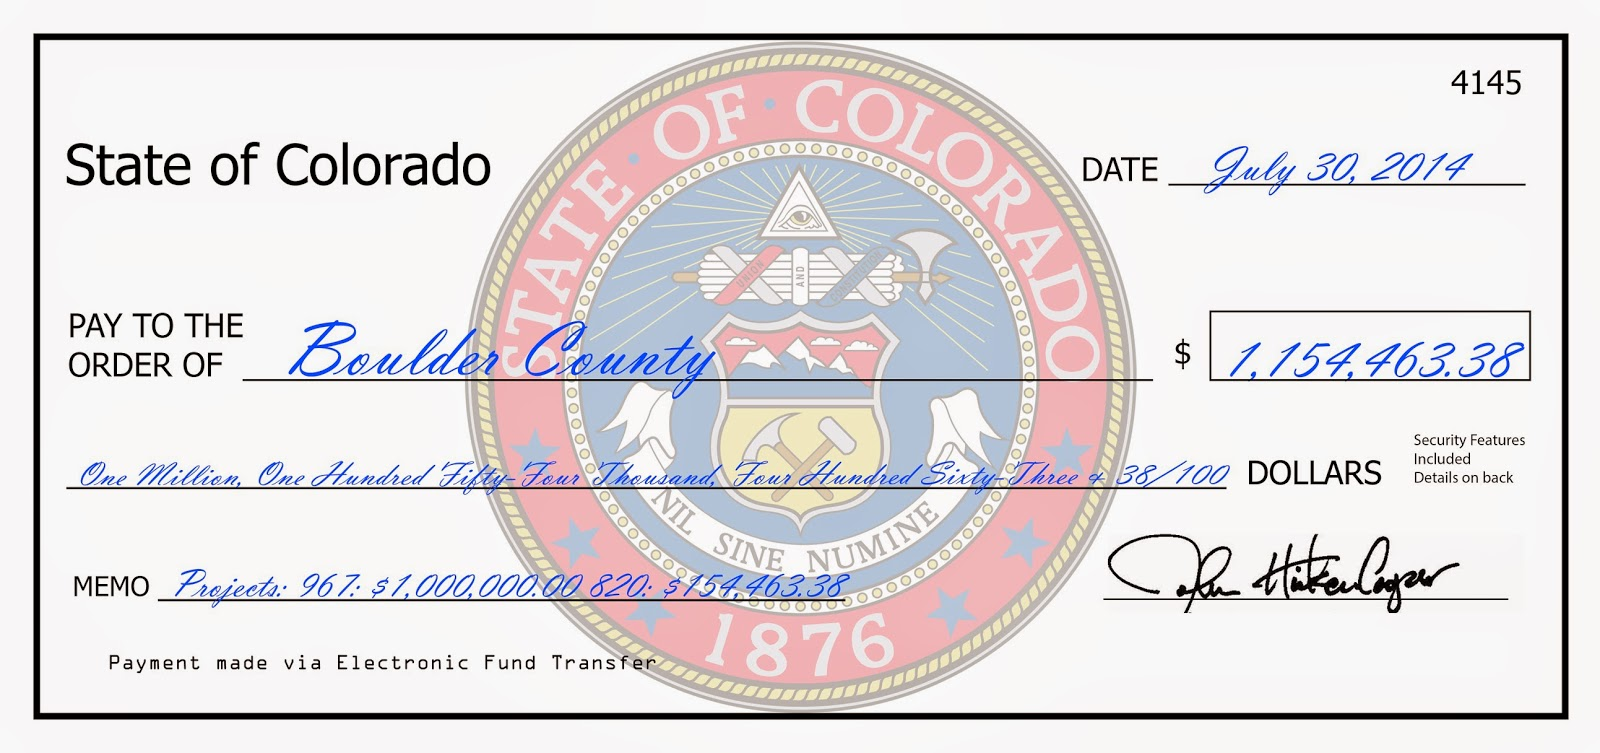 Check delivered to Boulder county for public assistance reimbursements.